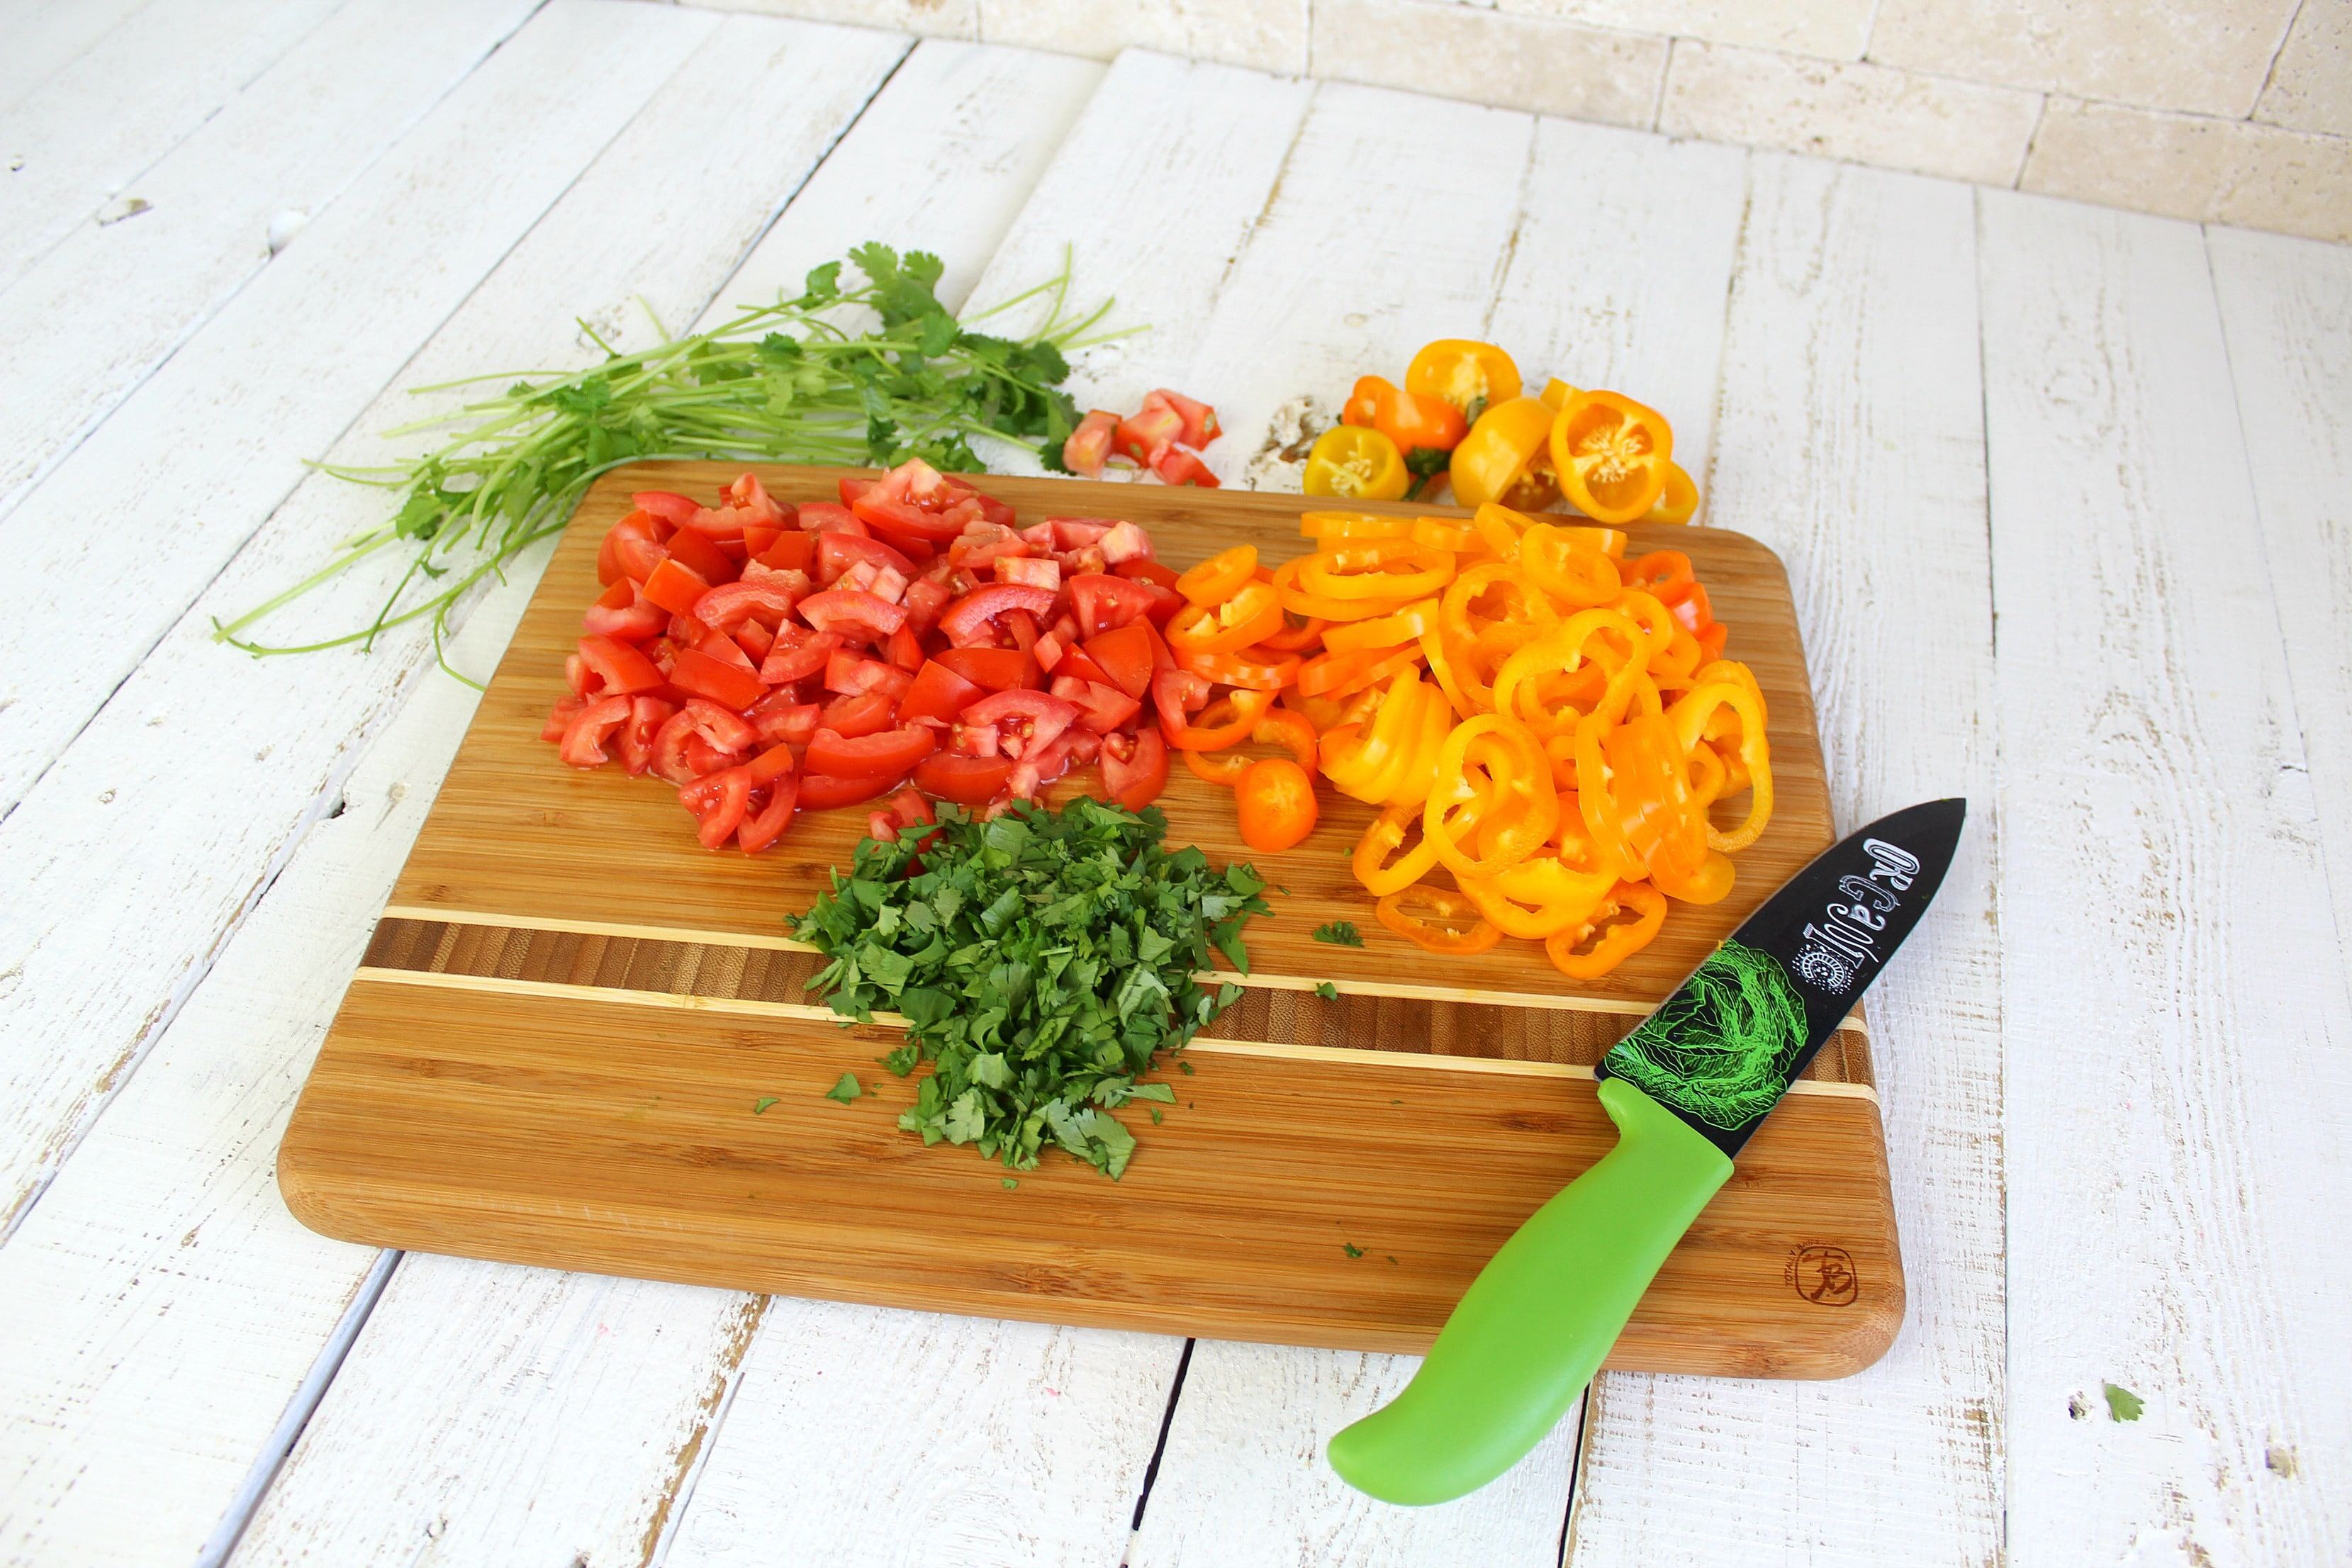 Cut peppers into rings, chop tomatoes into bite-sized pieces, and chop cilantro finely.